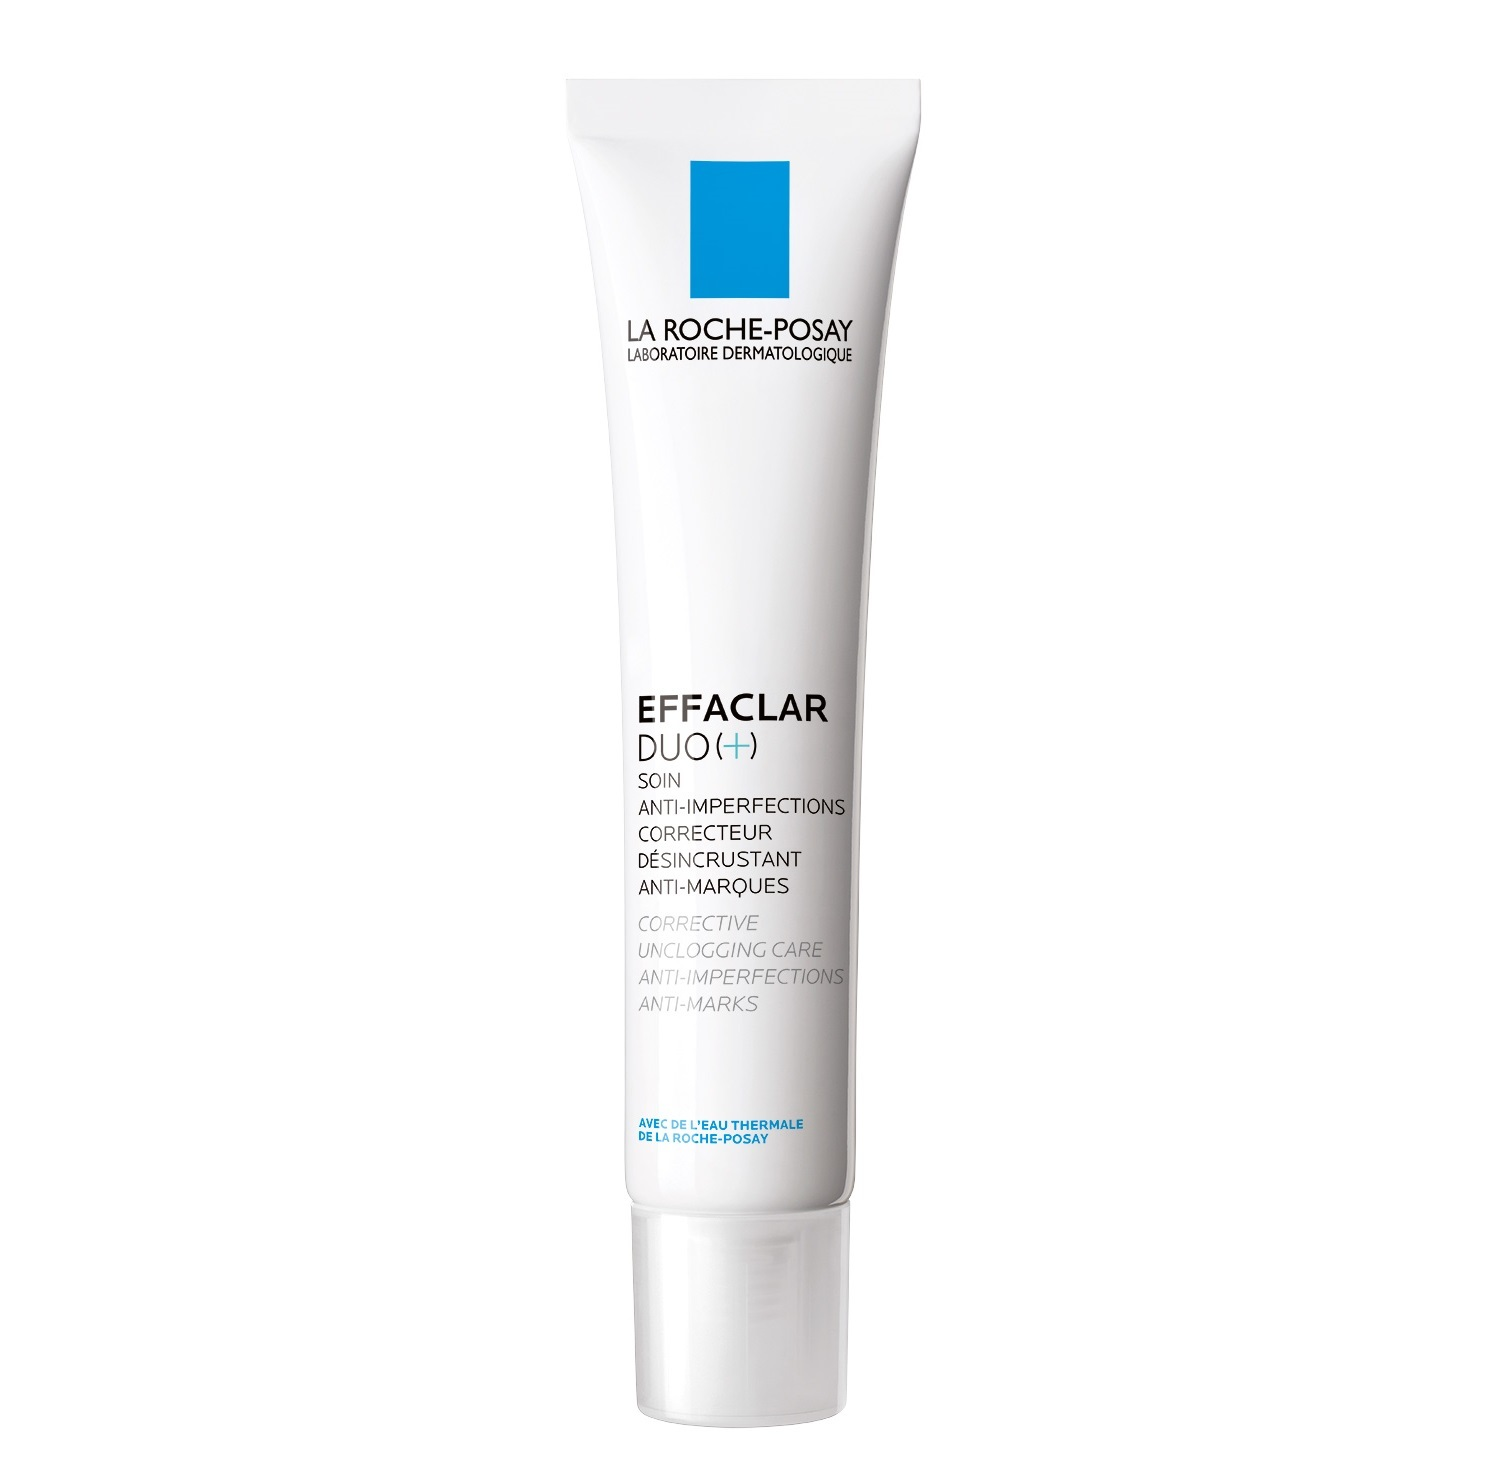 beauty renewal saviour posay k mats fluid your mat effaclar my this la roche skin